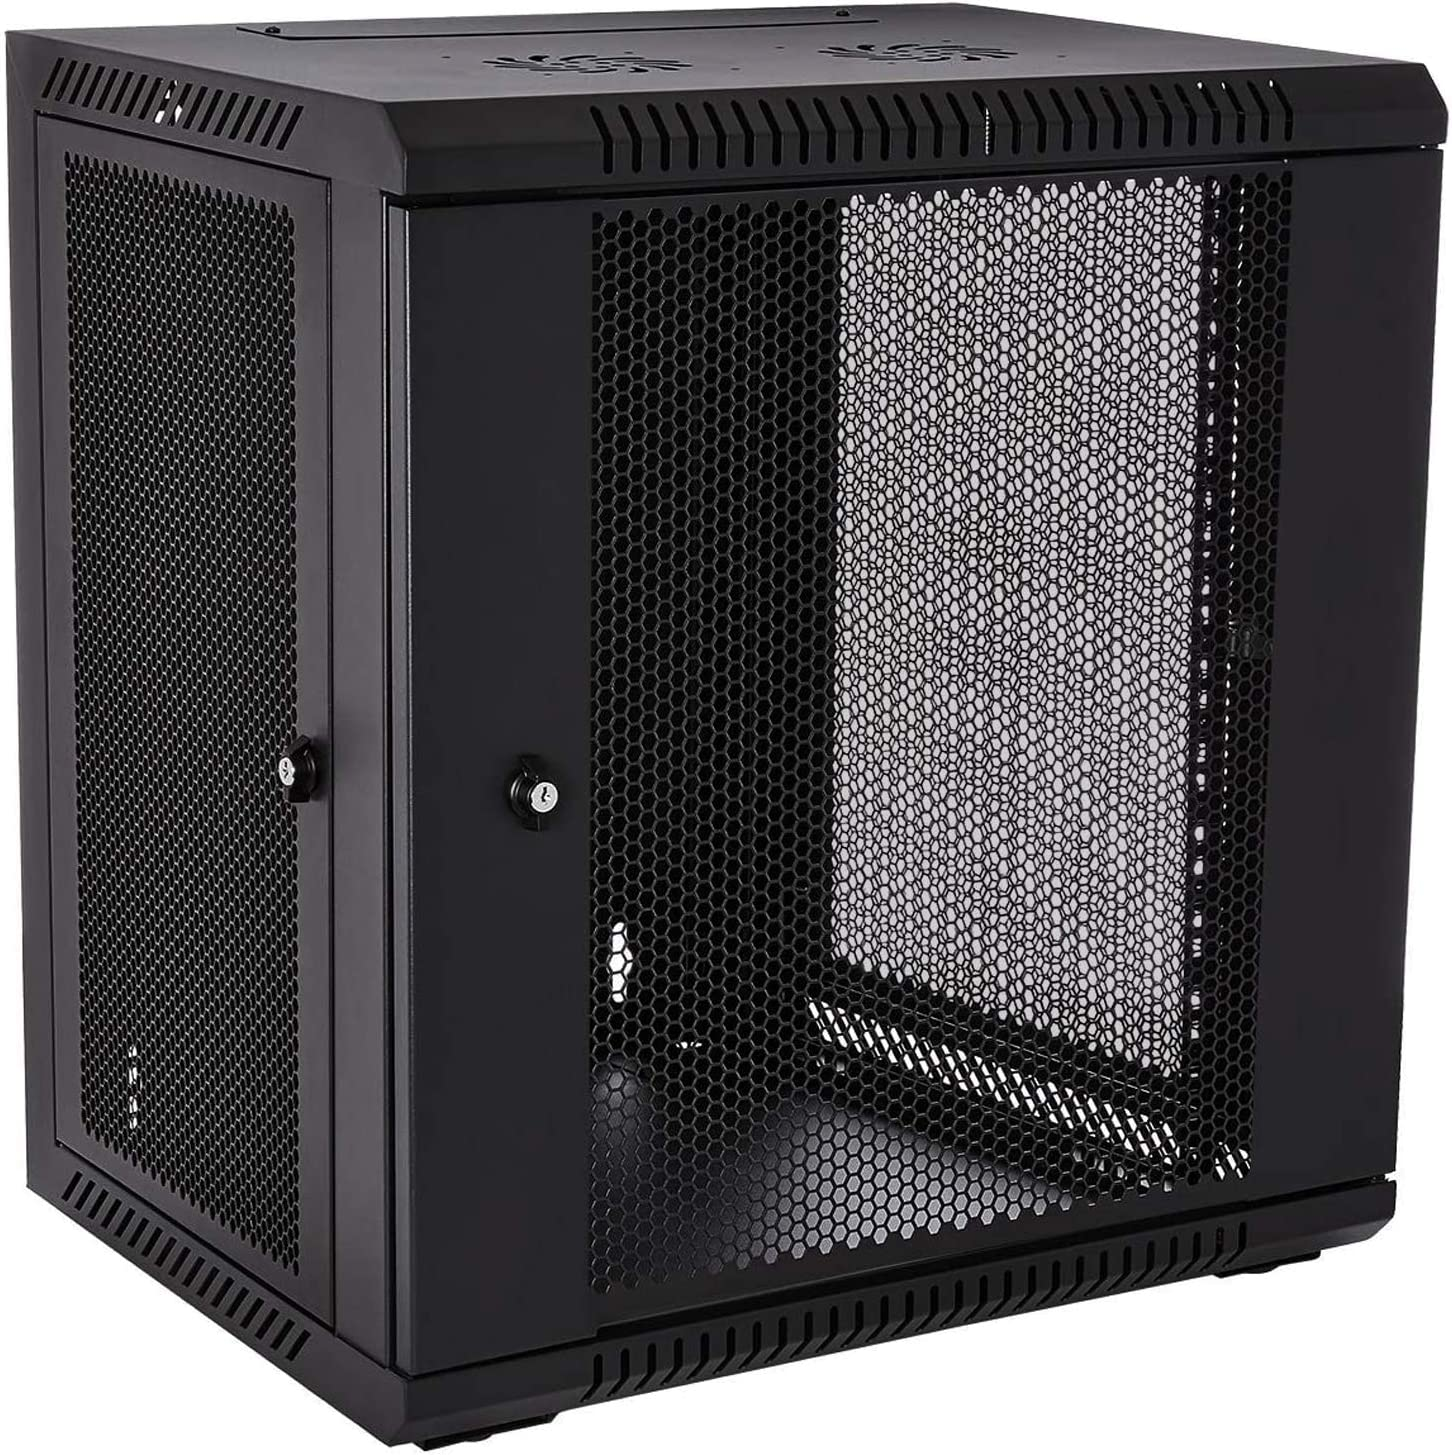 1 Set of 12U Network Server Data Cabinet Black Rack Perforated Door Lock,Apply to Network Wiring Room,Computer Room,Data Room,Control Center,Home,Office,etc.